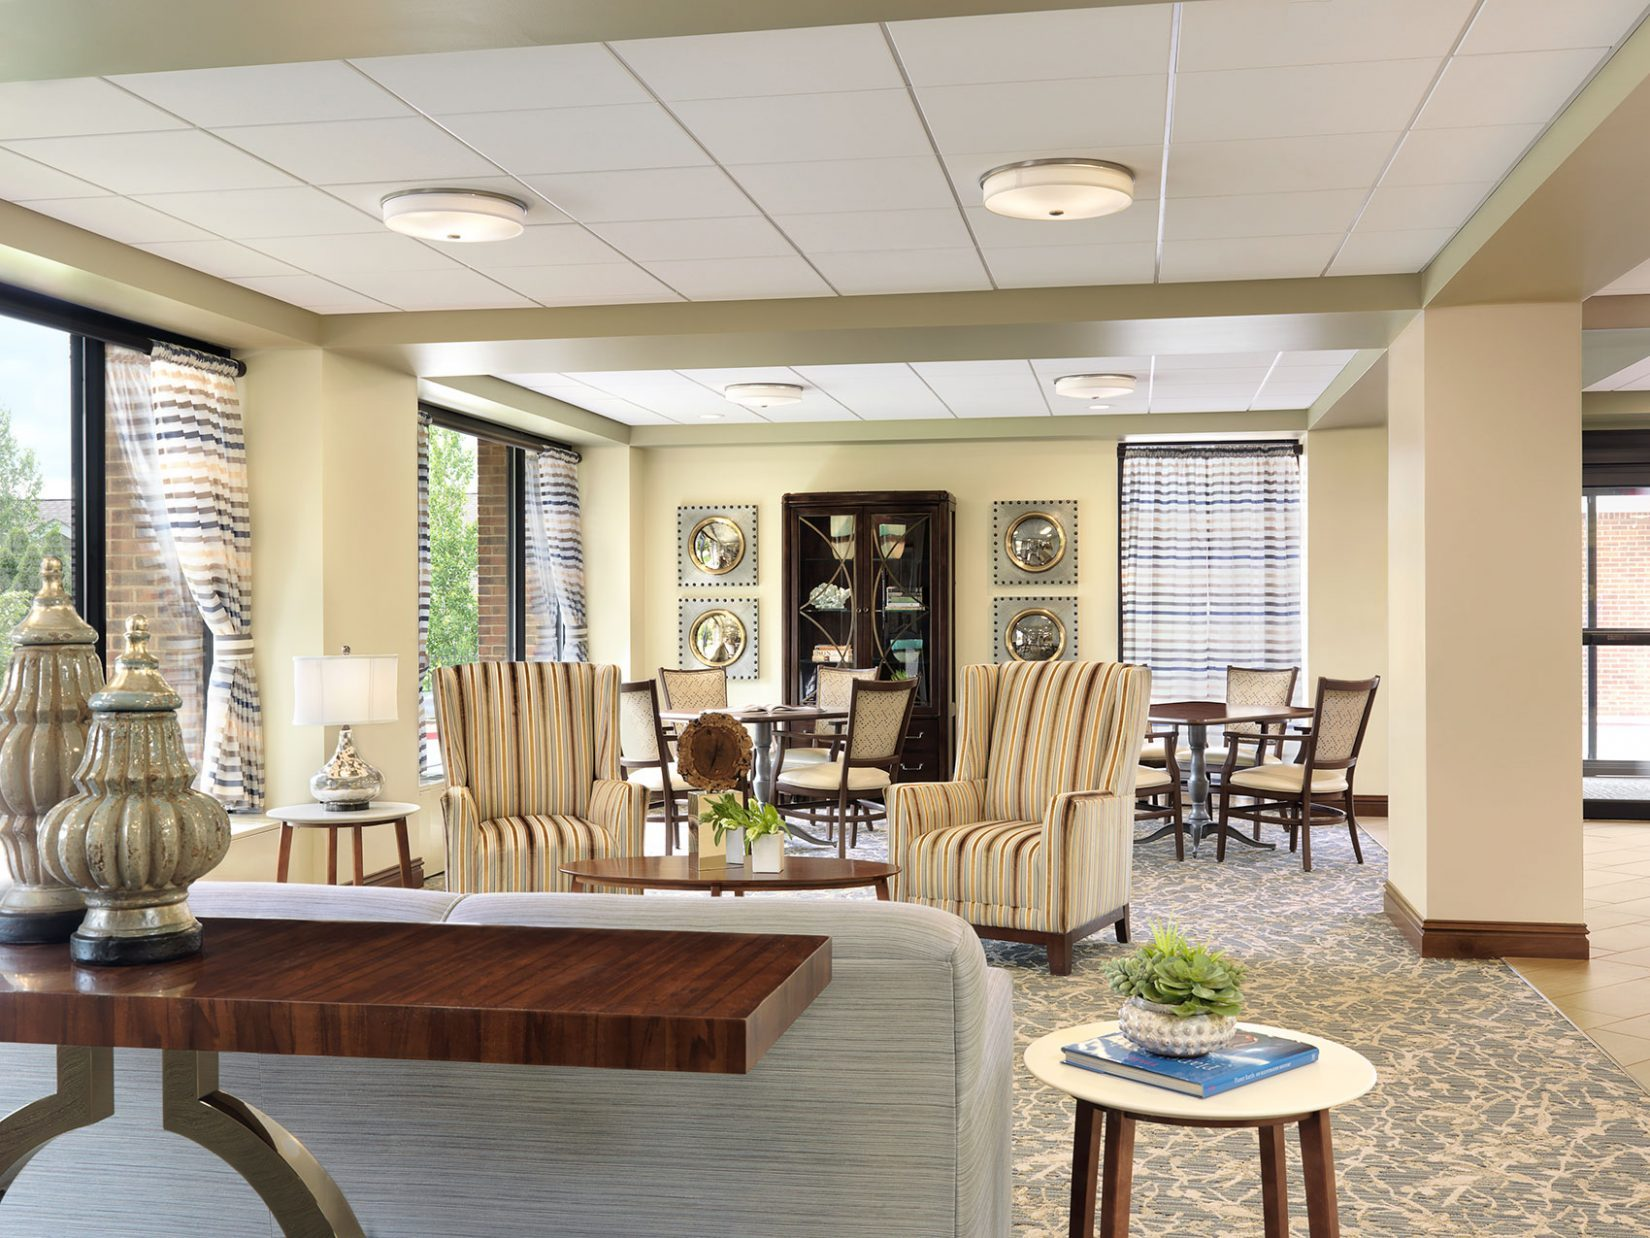 Senior Living Interior Design